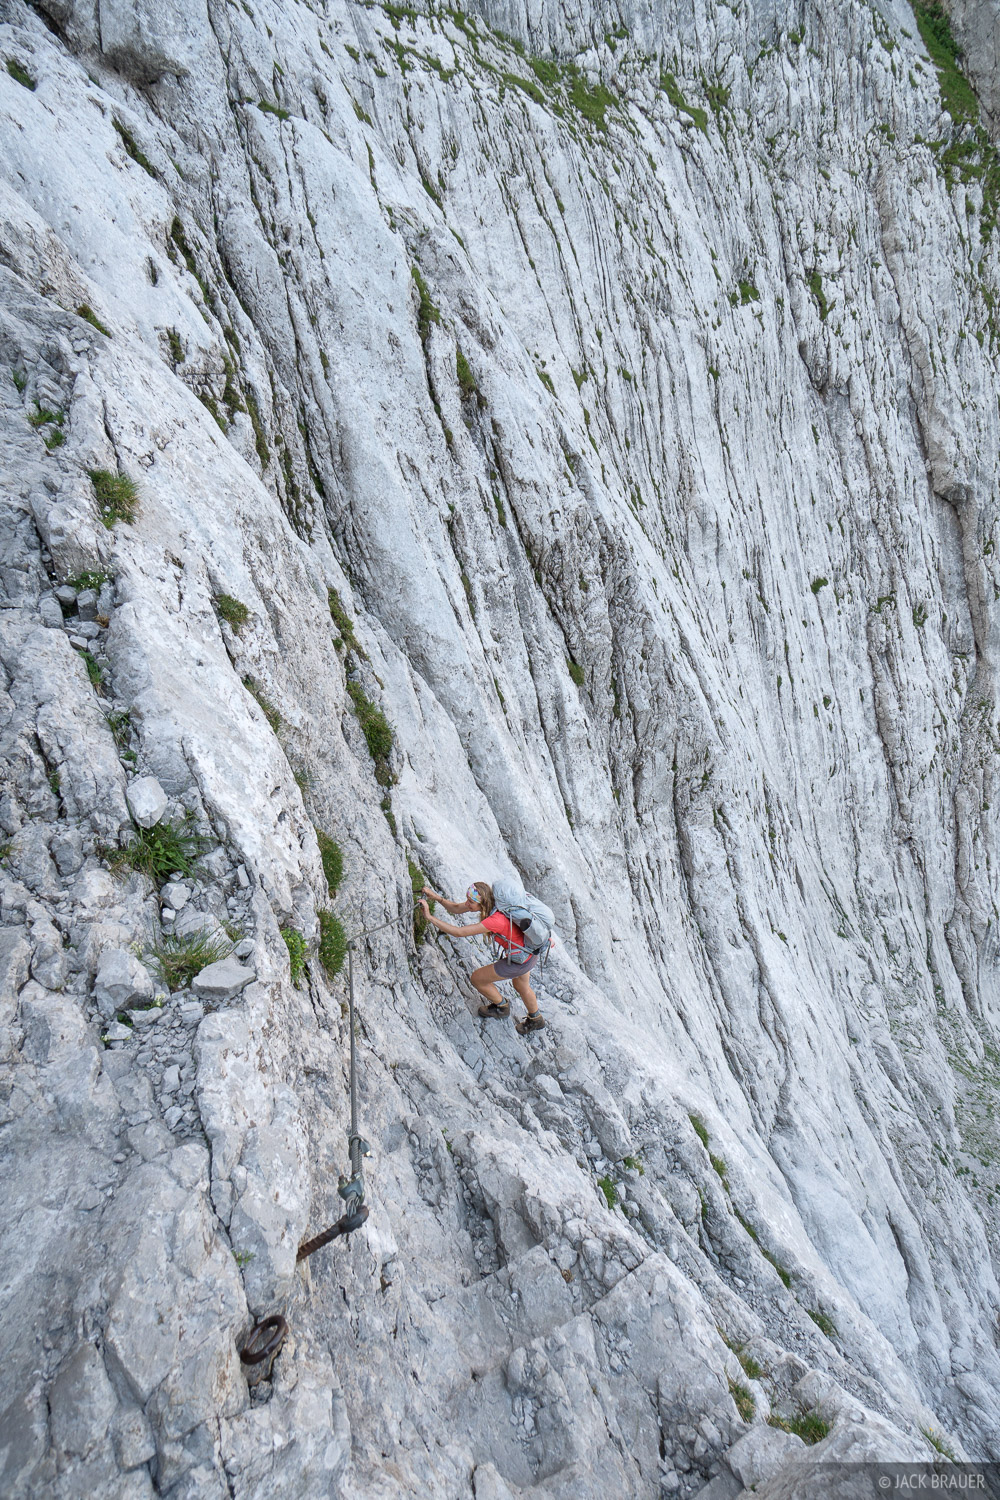 Scrambling up the intimidating Eggersteig route.